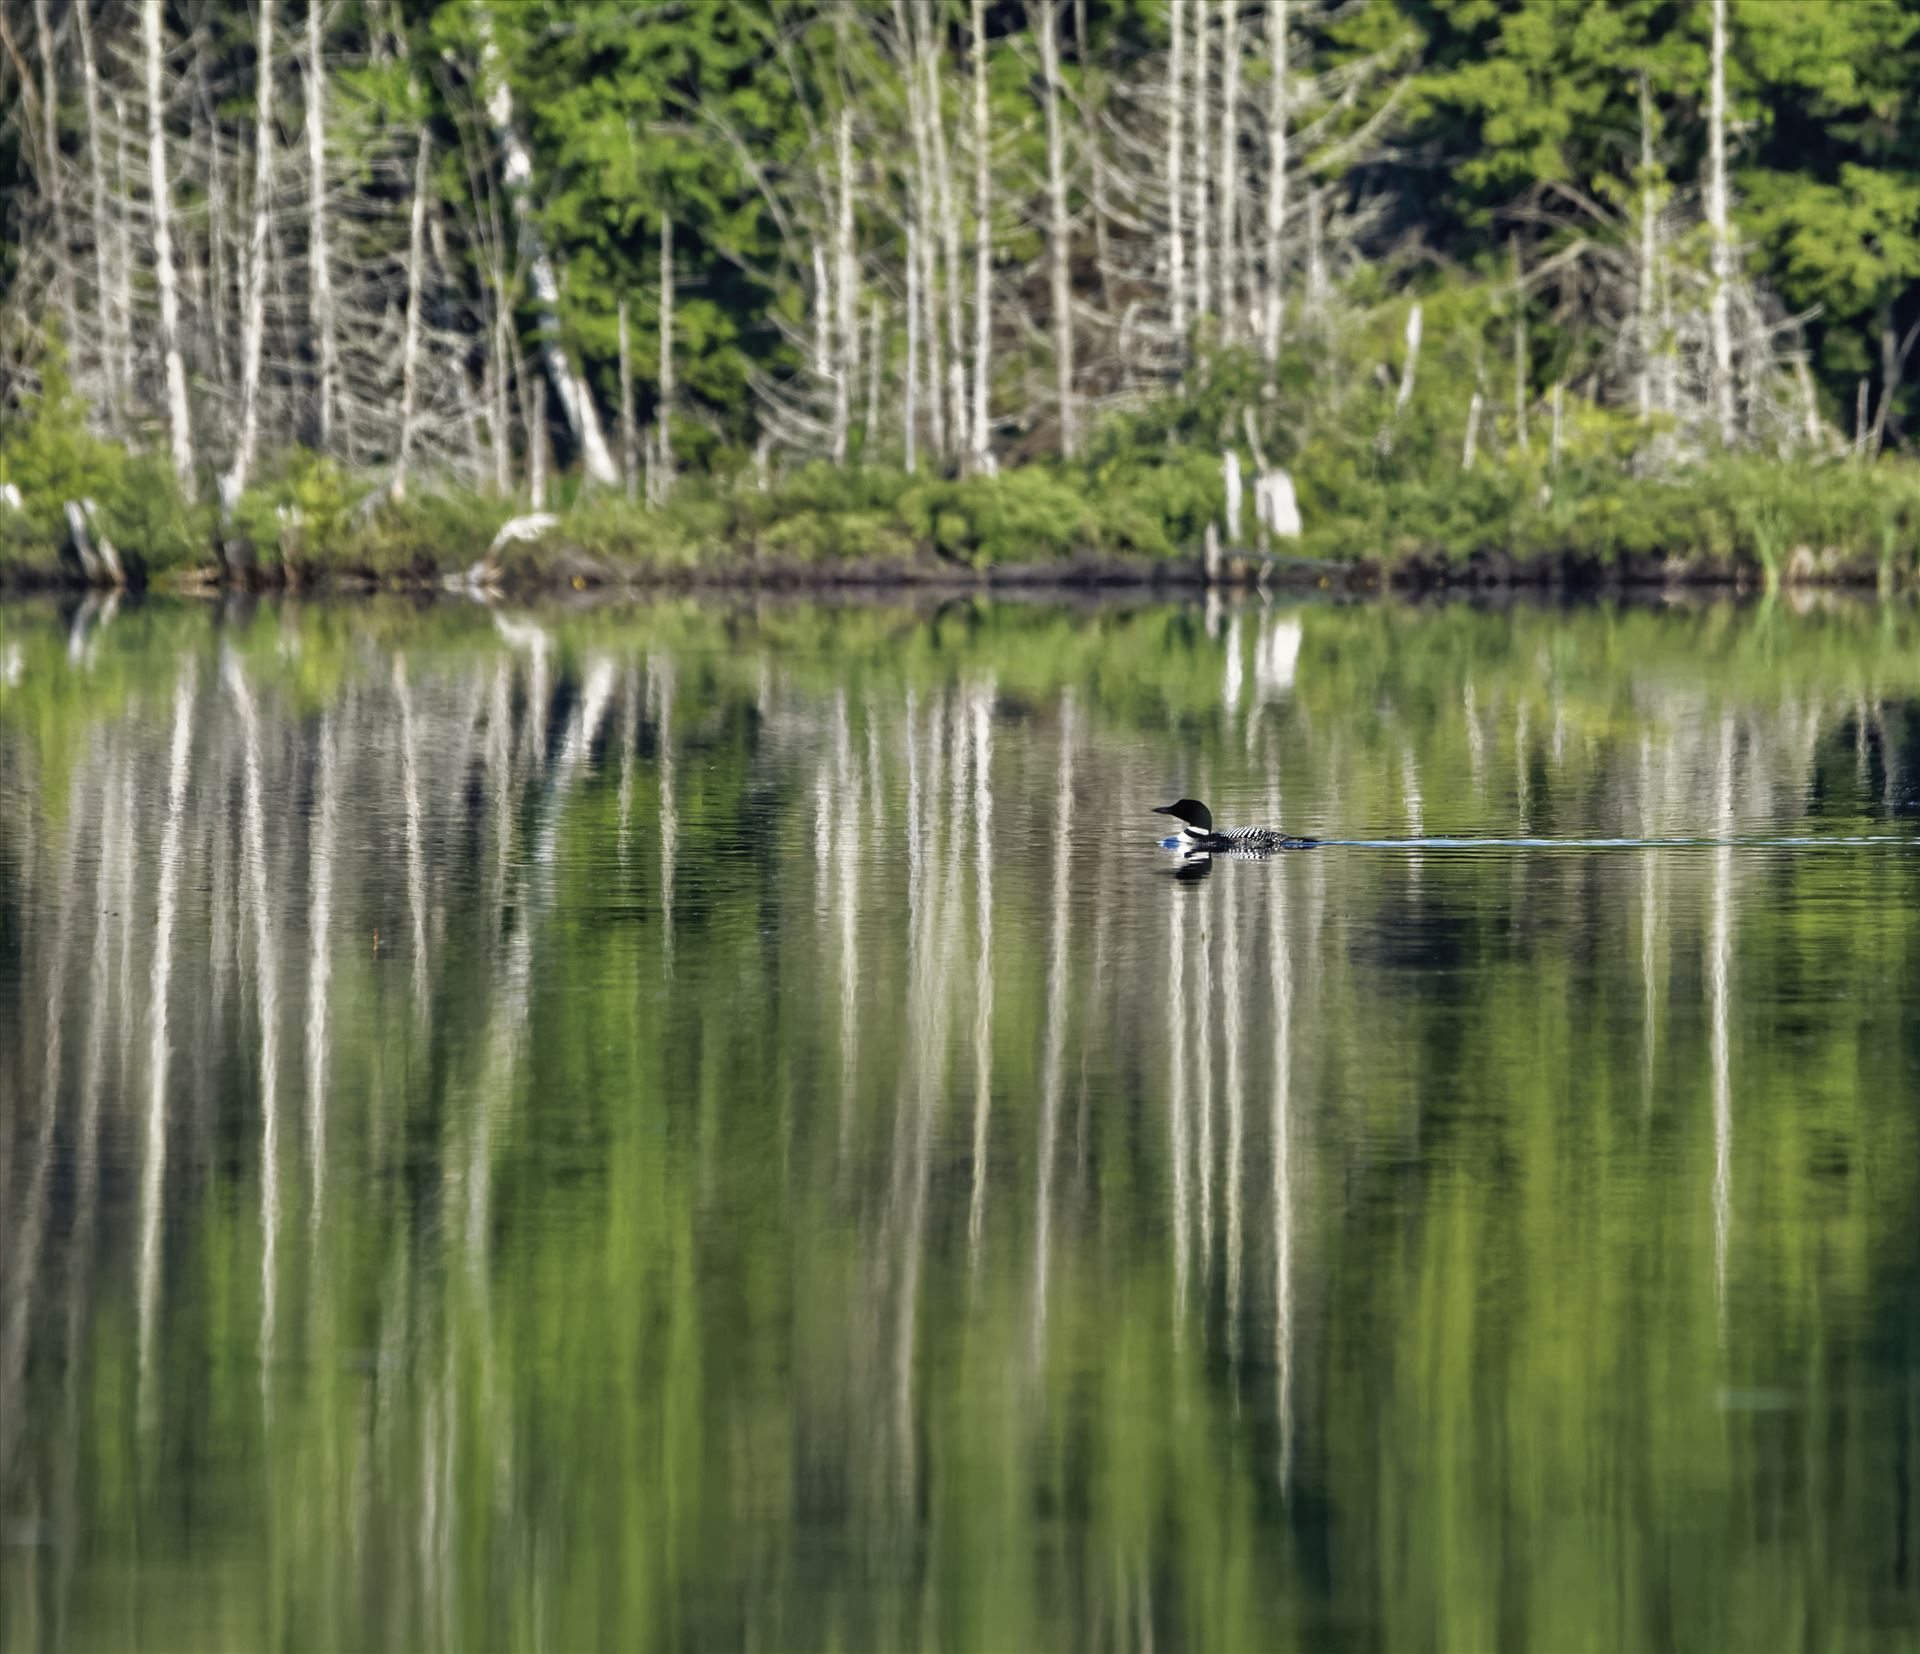 Common Loon - On Marble Pond, Northern Maine by Buckmaster